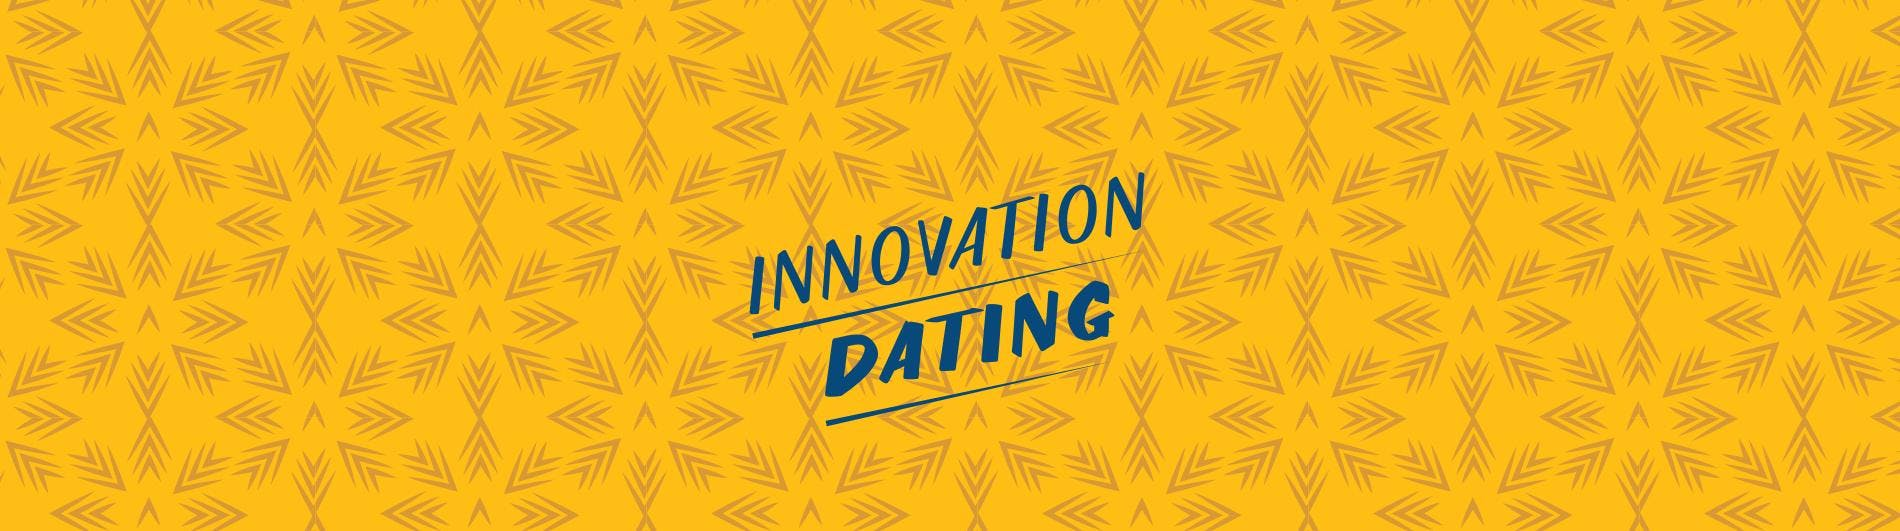 Innovation Dating JCDecaux